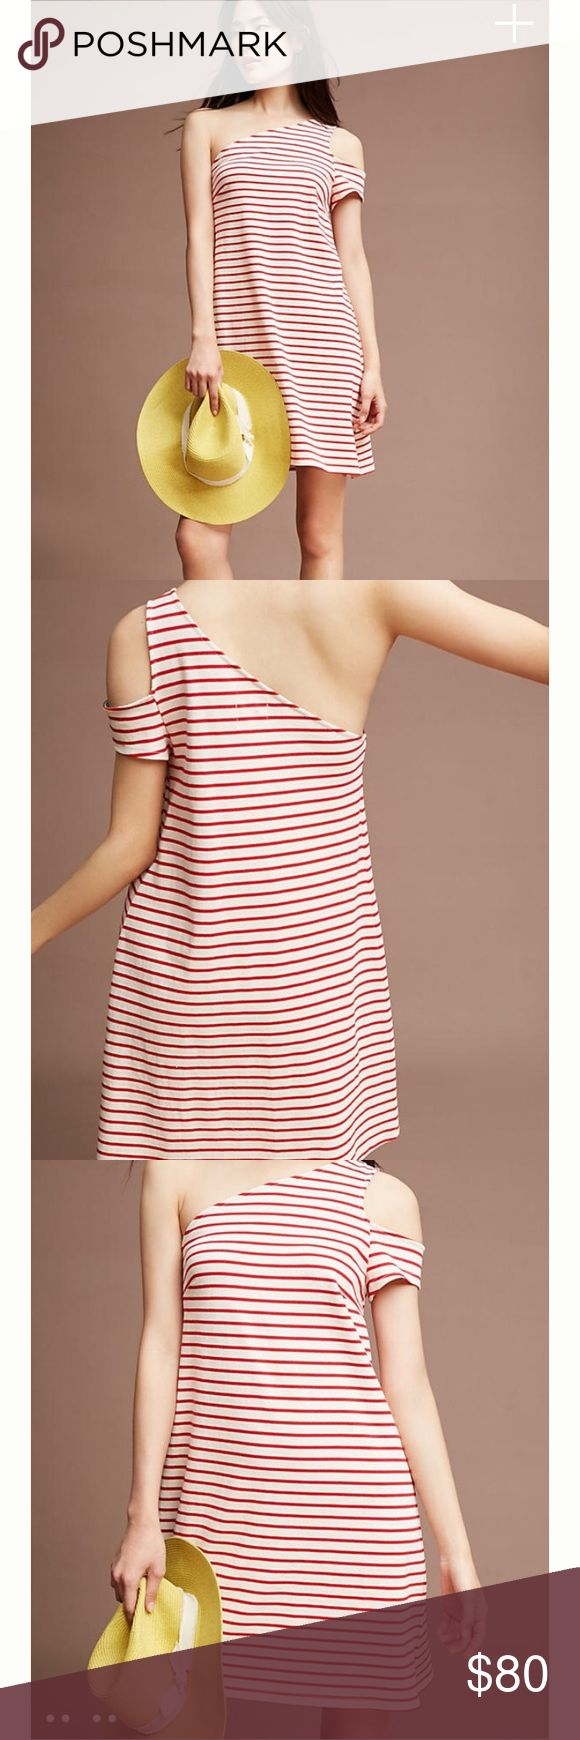 """Anthropologie Marketa One Shoulder Dress An oh-so-flattering open-shoulder elevates this classic nautical dress. Pair with laid-back slides and a chic summer hat for the ultimate warm-weather ready look.  Cotton Open-shoulder, a-line silhouette Pullover styling Hand wash Imported Style No. 4130339186037 Dimensions Regular falls 25.5"""" from shoulder Petite falls 23.75"""" from shoulder Model Notes Model is 5'10"""" Anthropologie Dresses"""